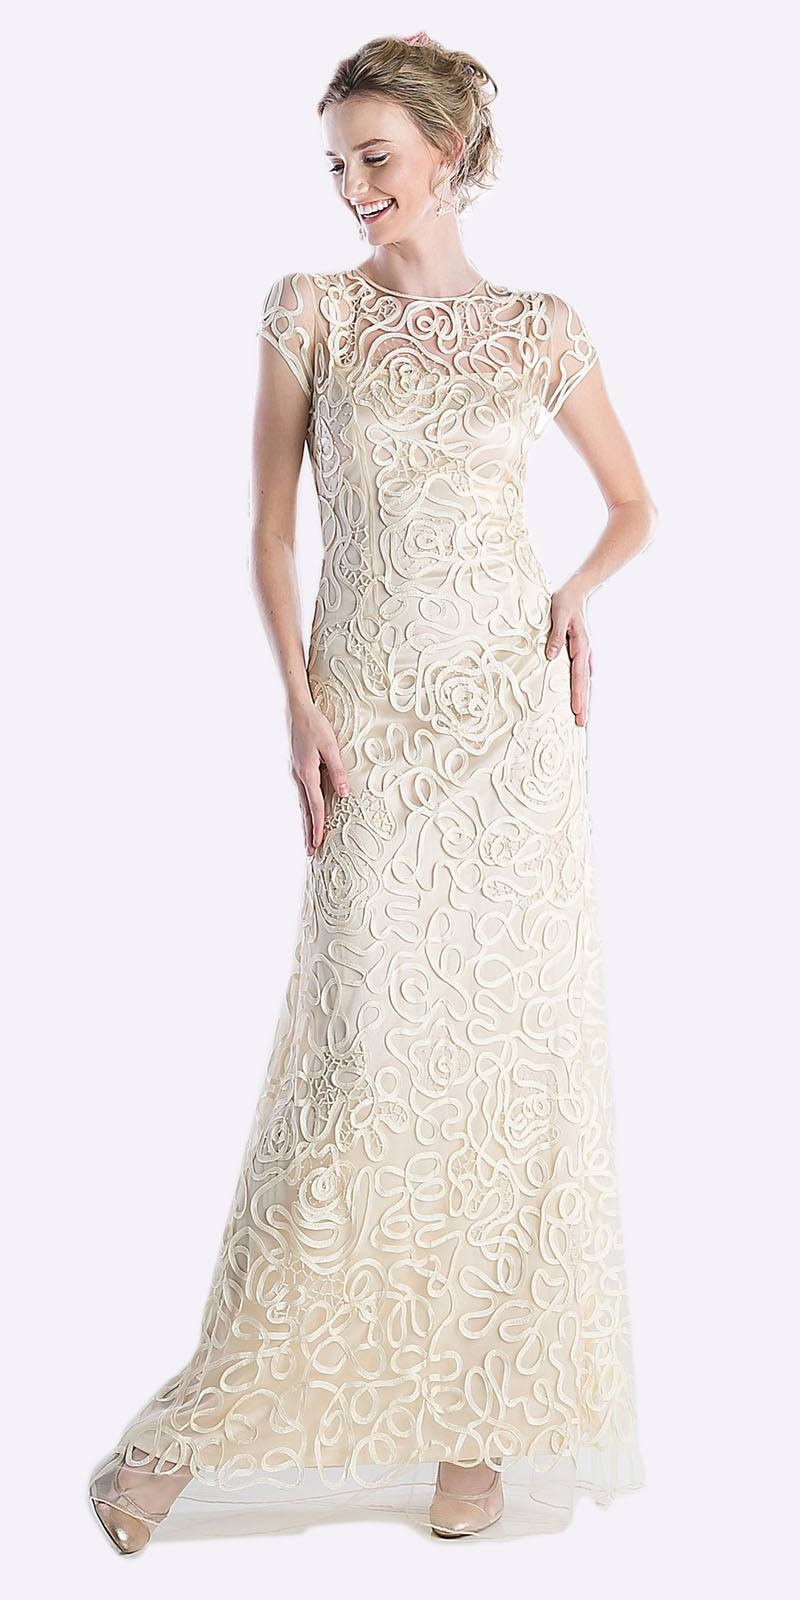 43ab7ad776 Cinderella Divine 1920 - Semi Formal Long Lace Cream Dress Tea Length Short  Sleeve ...